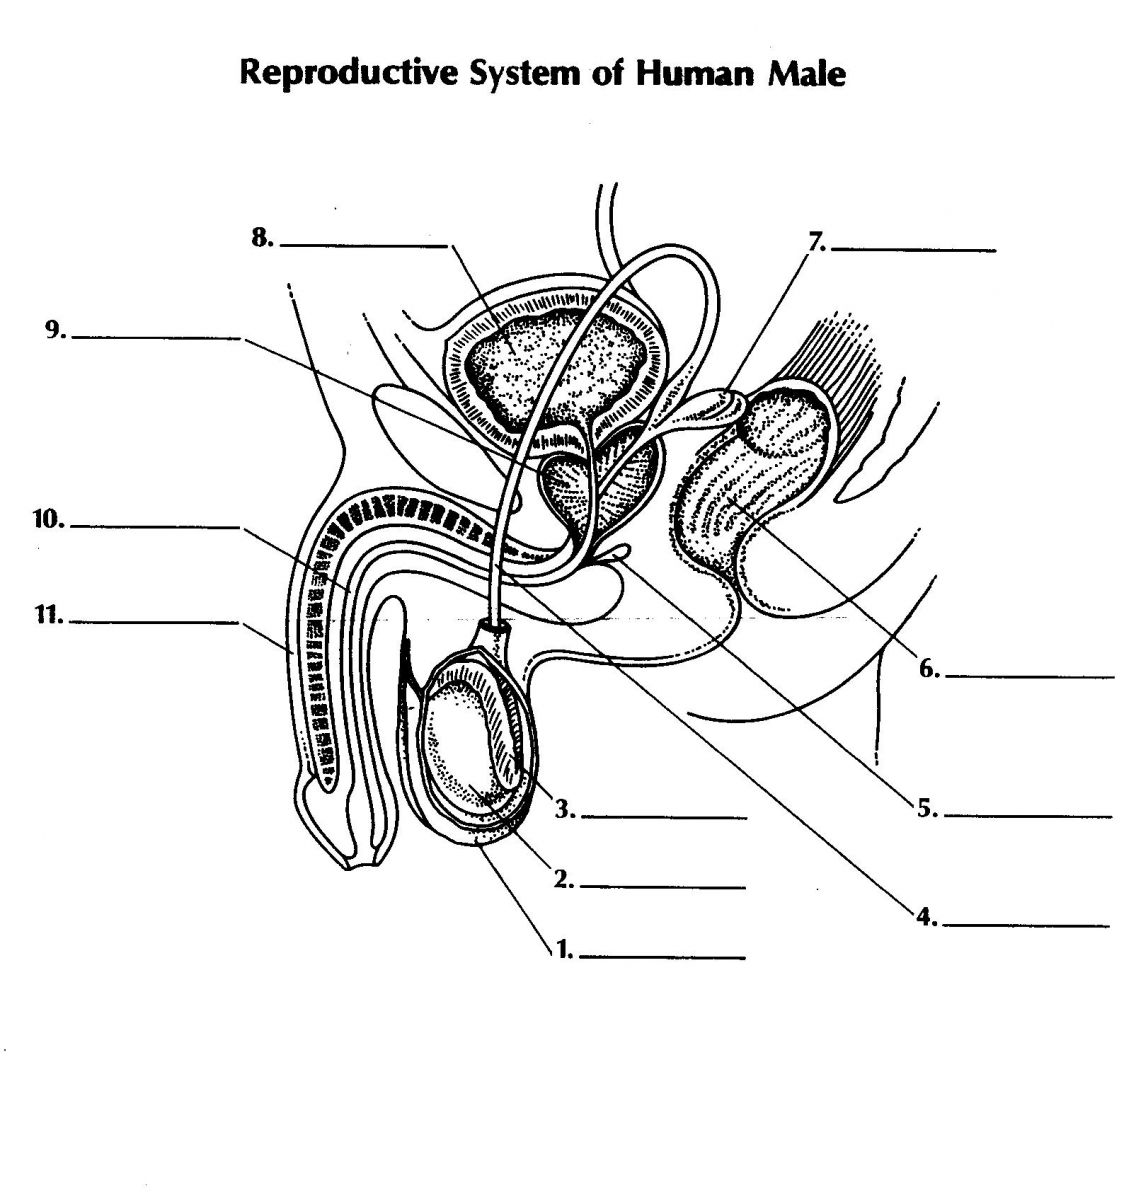 Reproductive System Of The Human Male - ProProfs Quiz